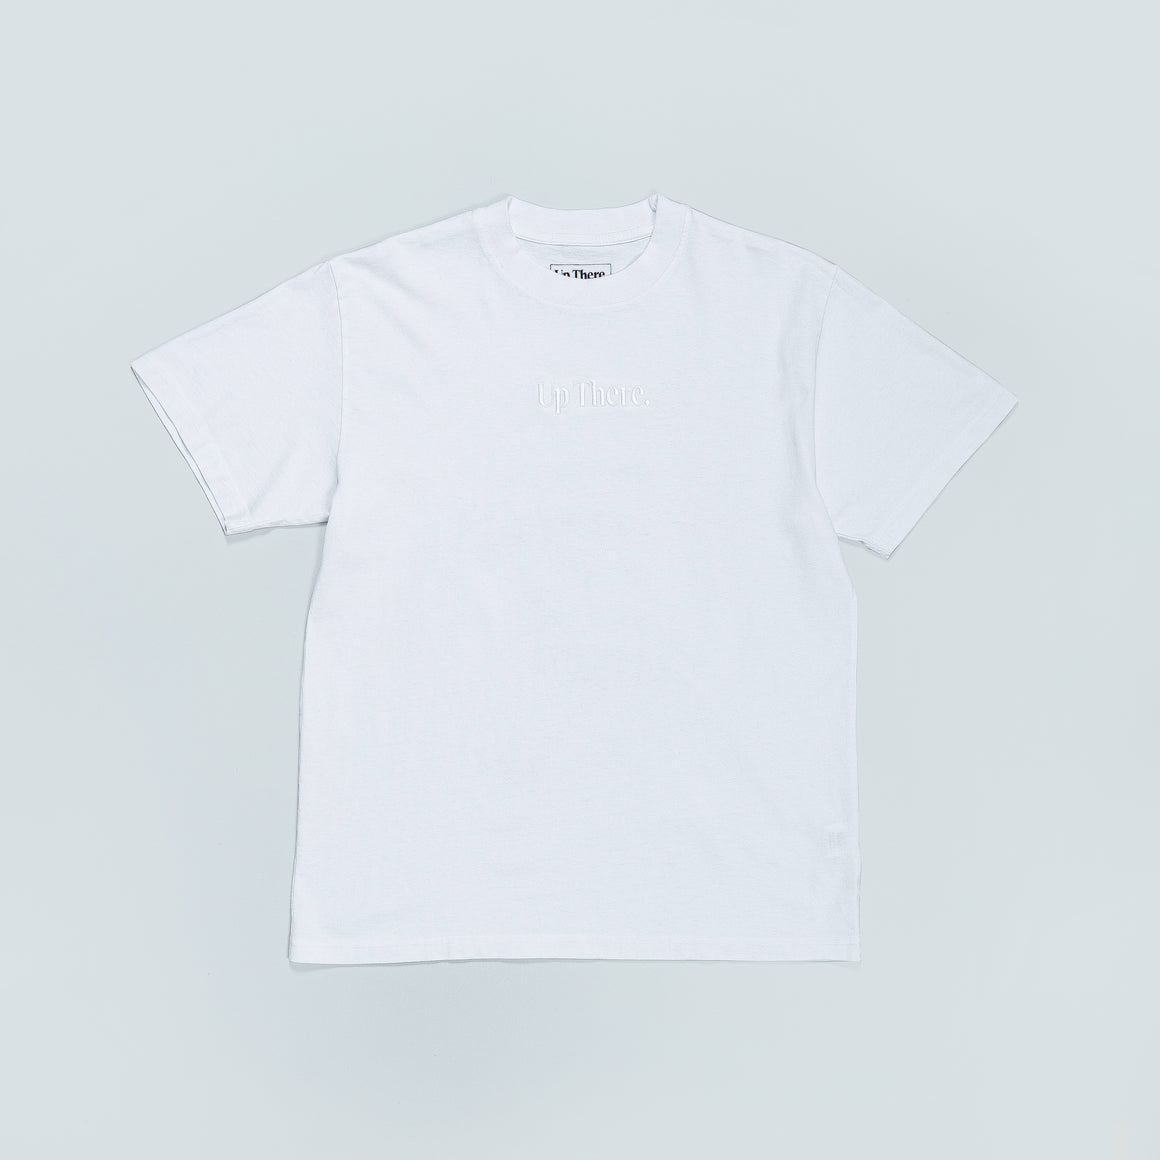 Up There - Short Sleeve Heavyweight Tee - White/White - Up There